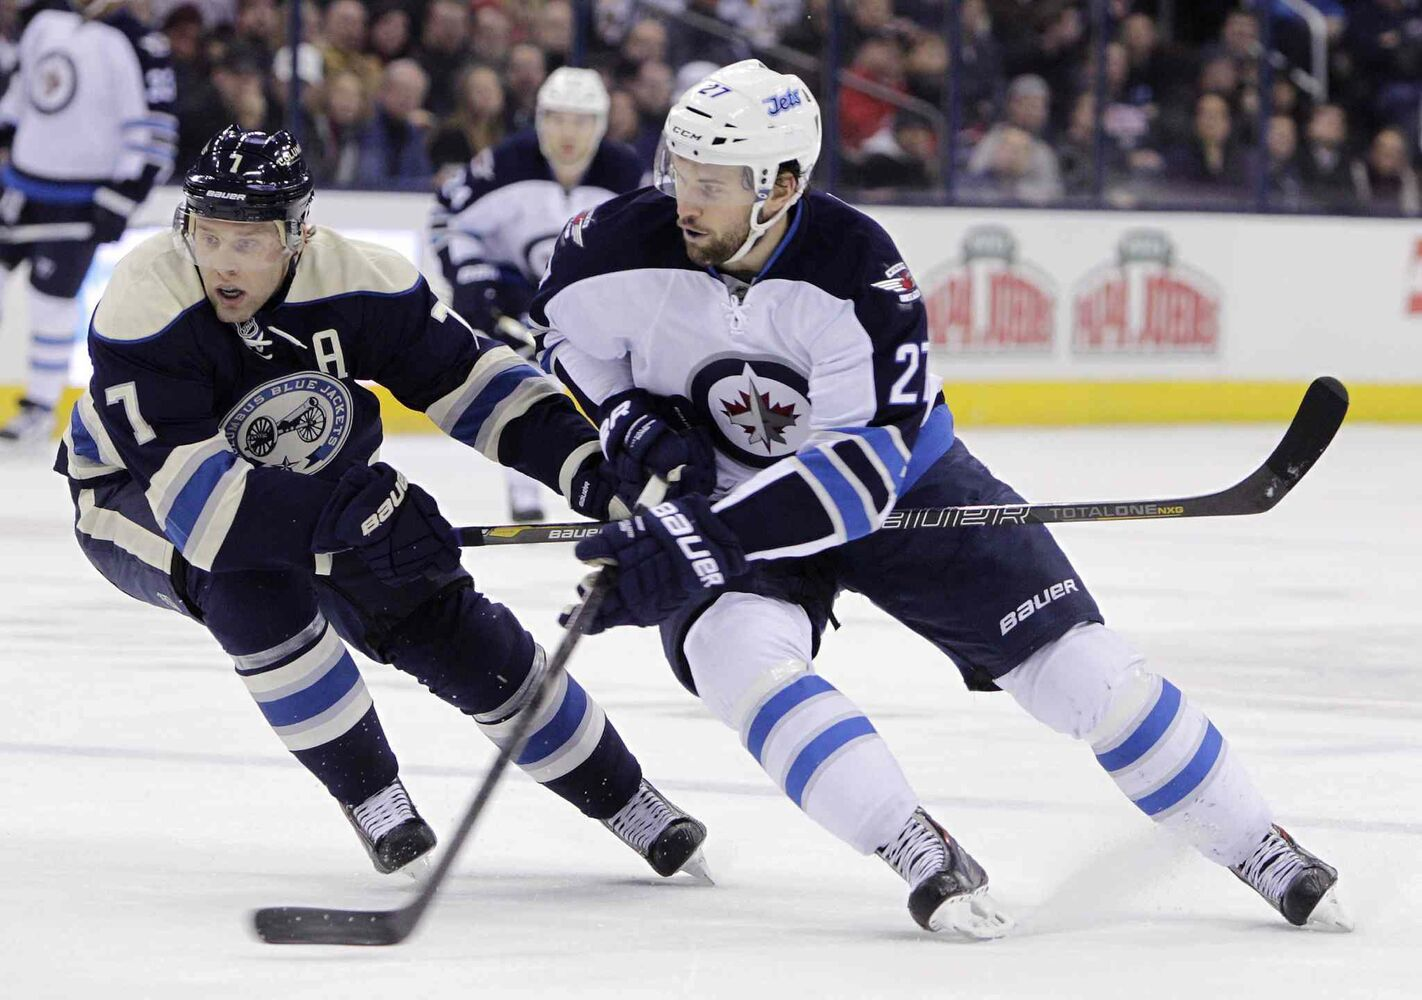 Winnipeg Jets' Eric Tangradi (right) carries the puck across the blue line as Columbus Blue Jackets' Jack Johnson defends during the first period Monday.